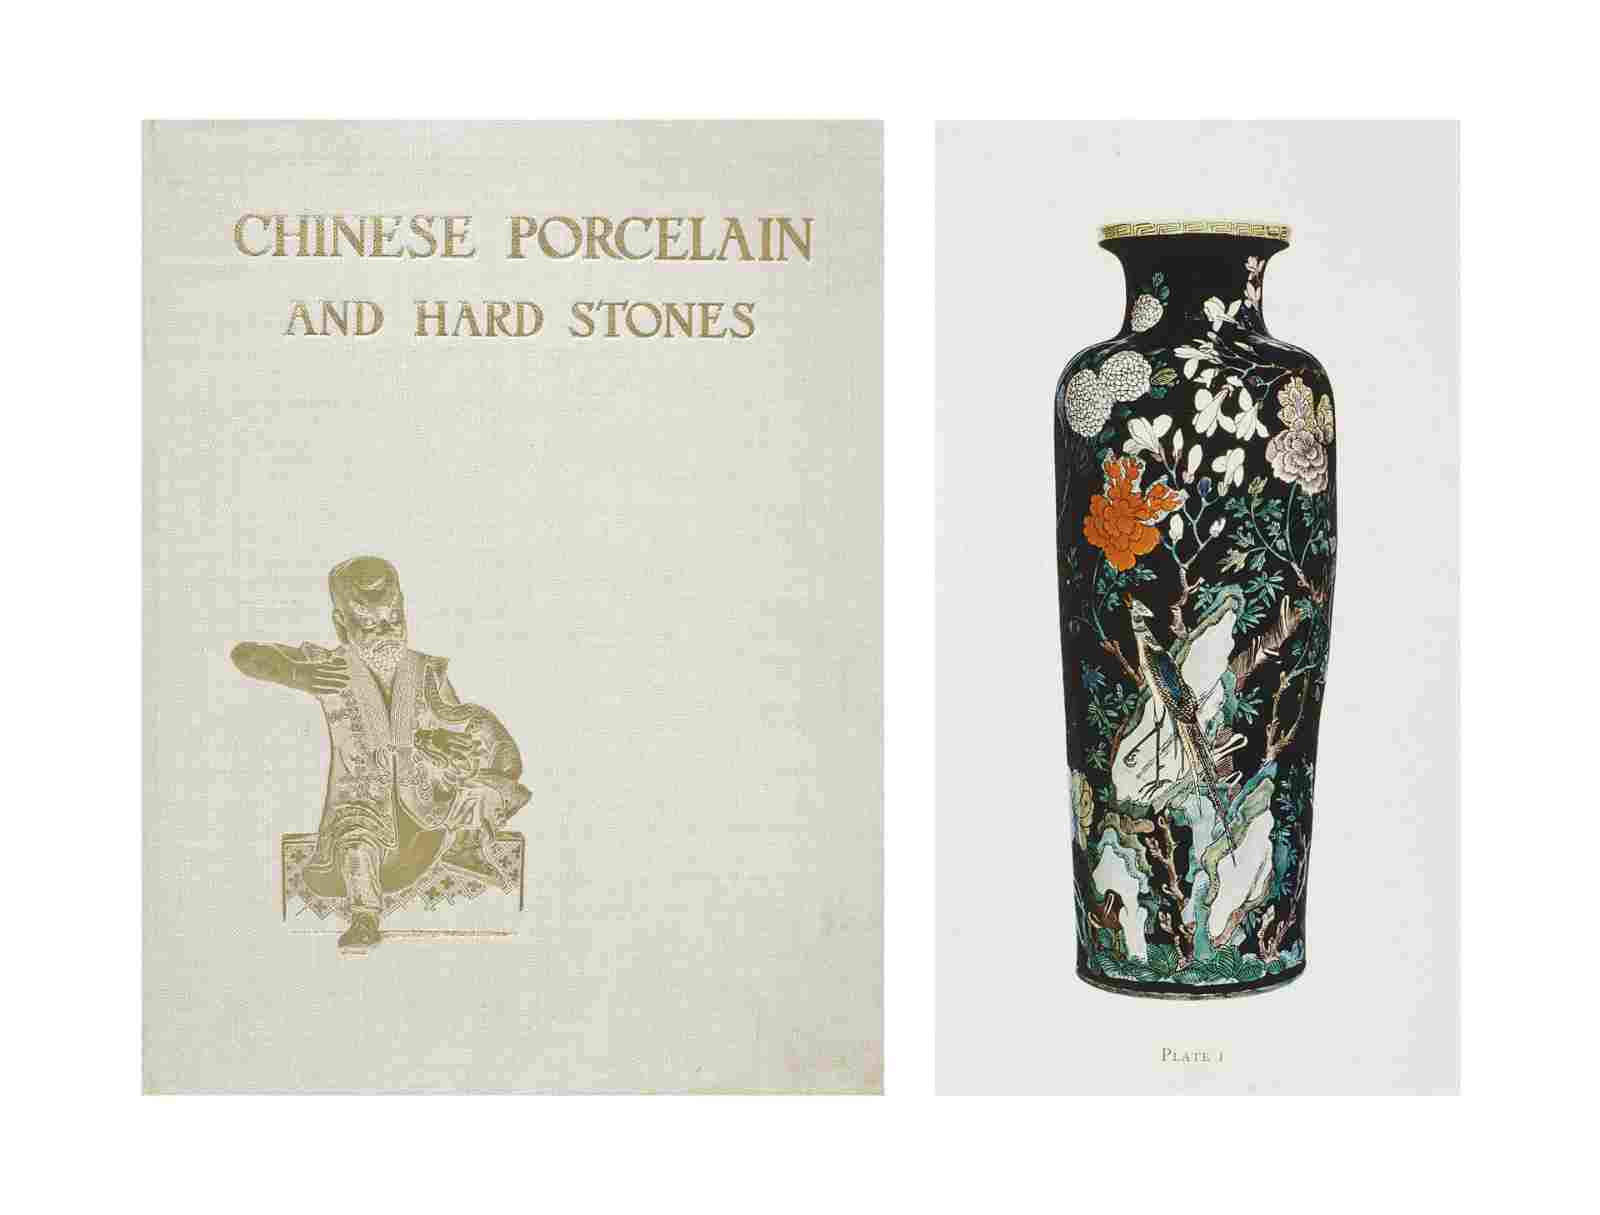 CHINESE PORCELAIN AND HARD STONES